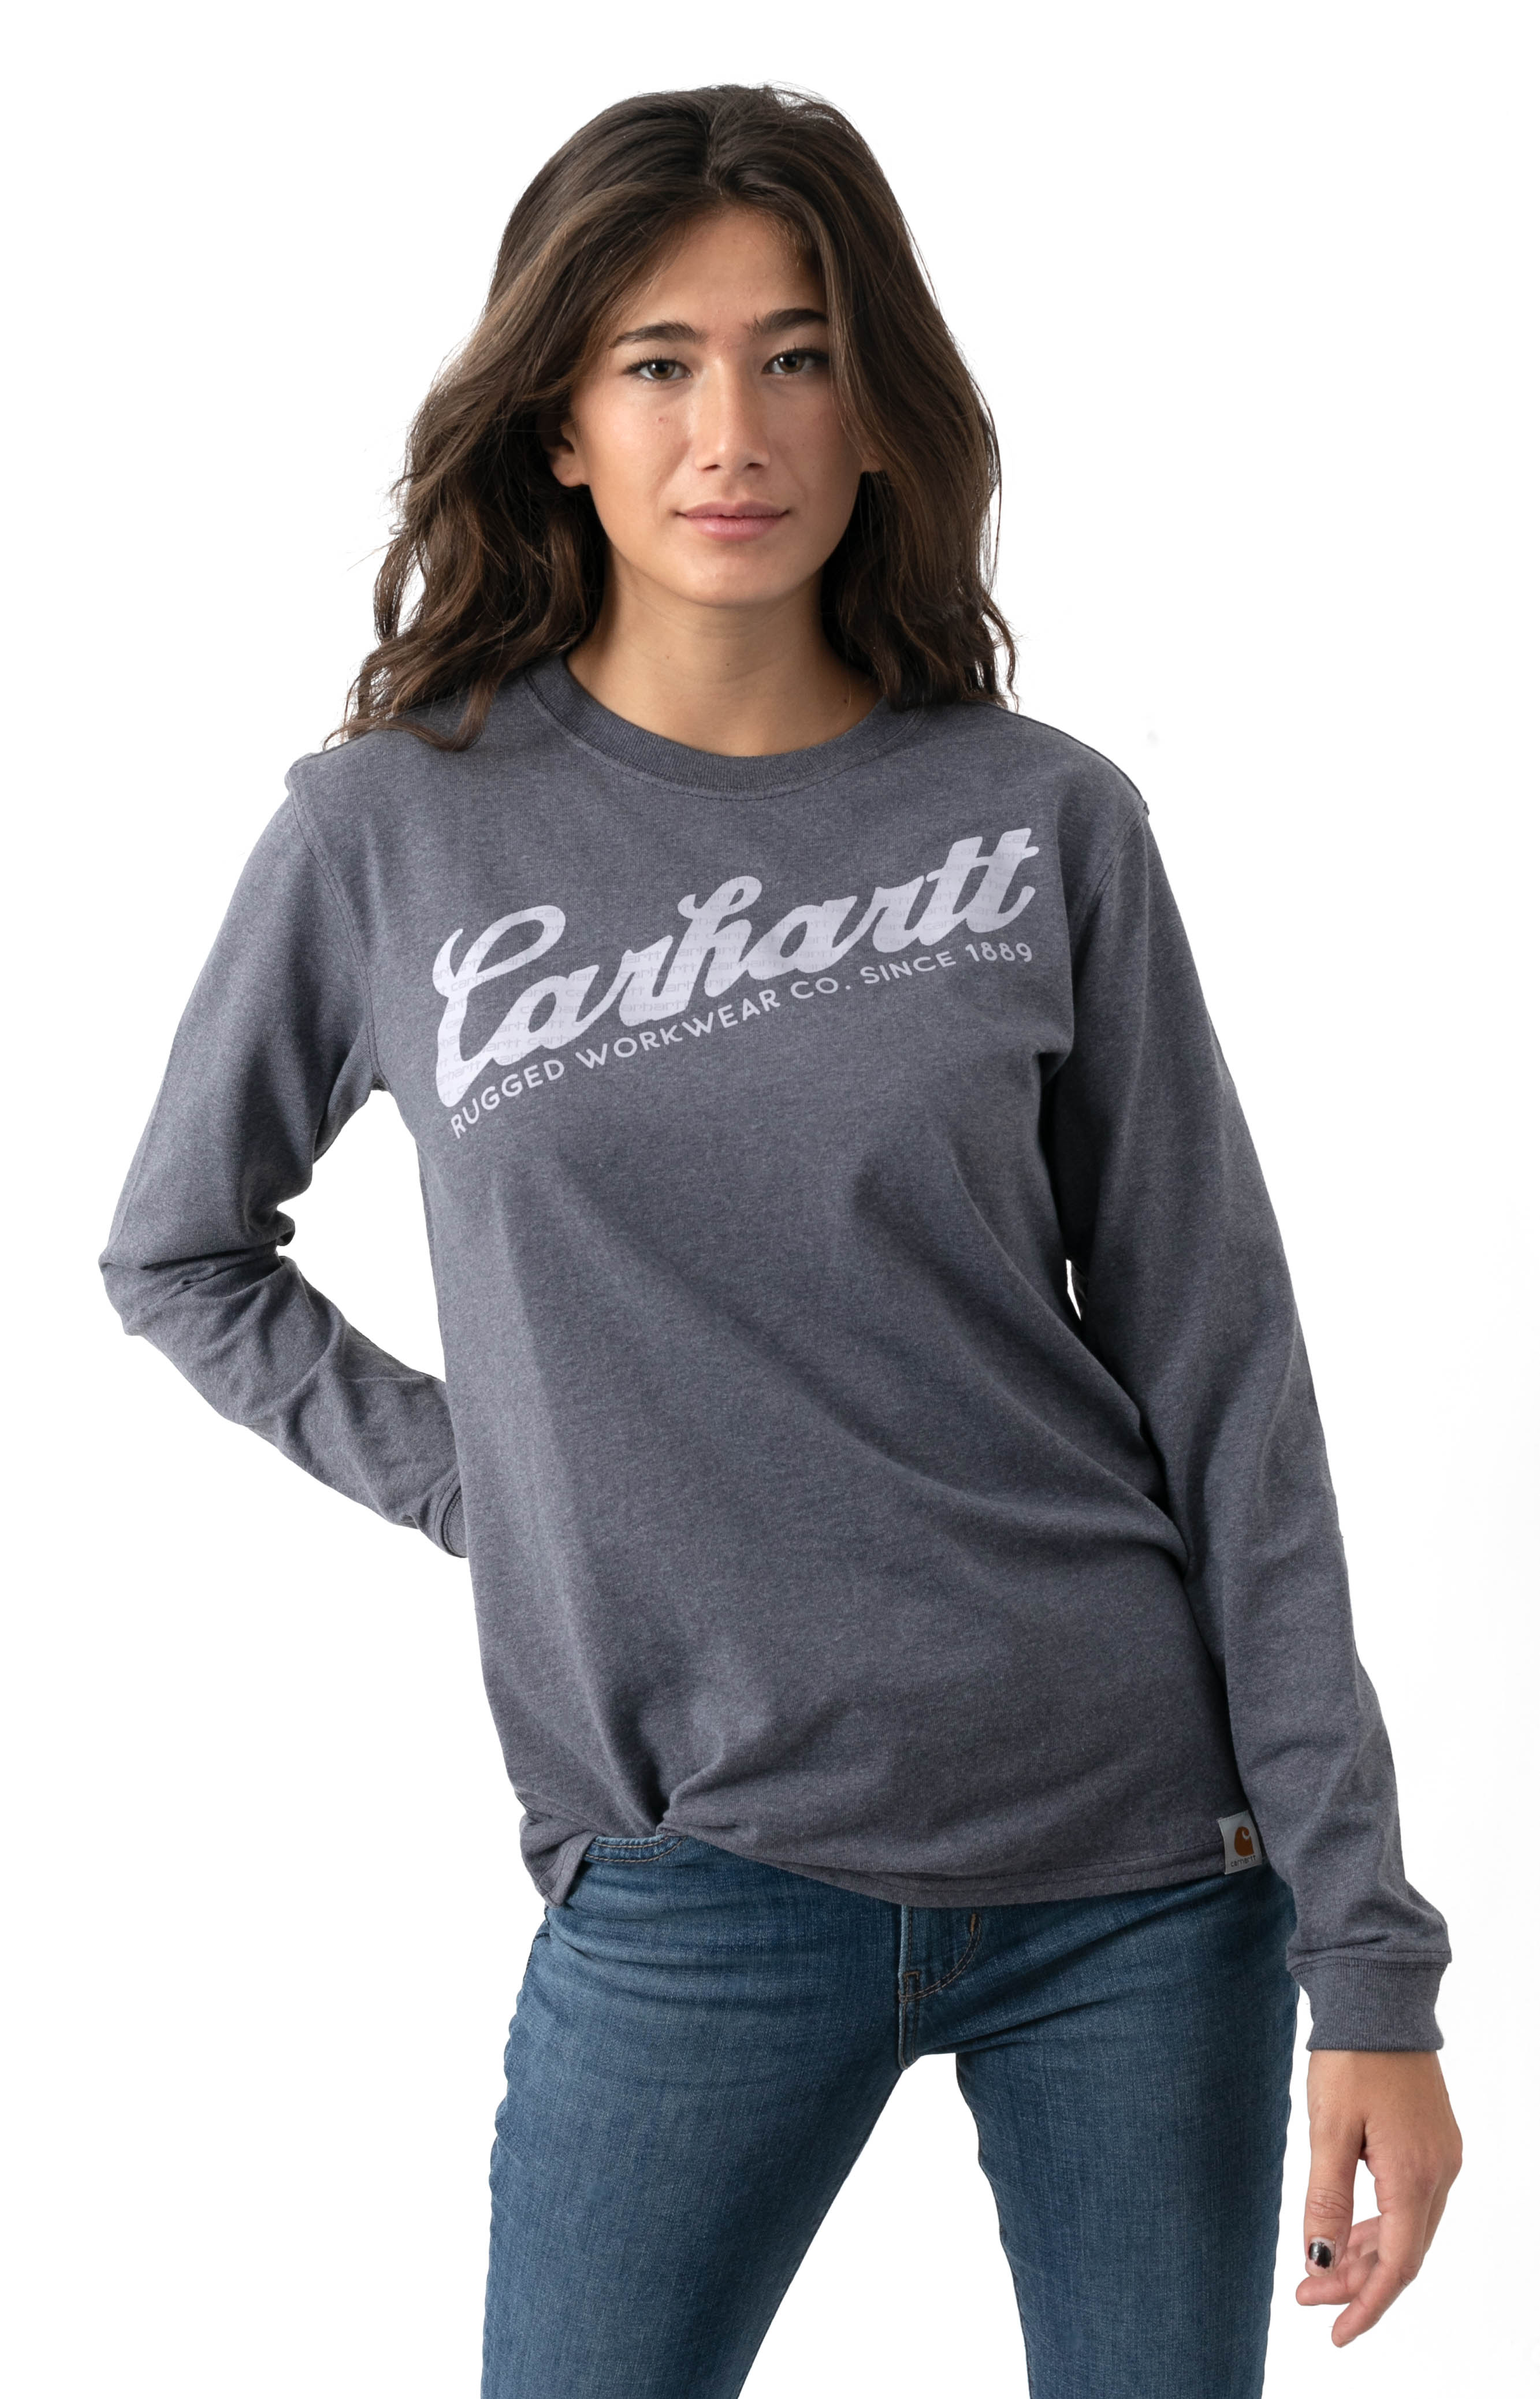 (104523) Original Fit Heavyweight L/S Carhartt Graphic Shirt - Graystone Heather